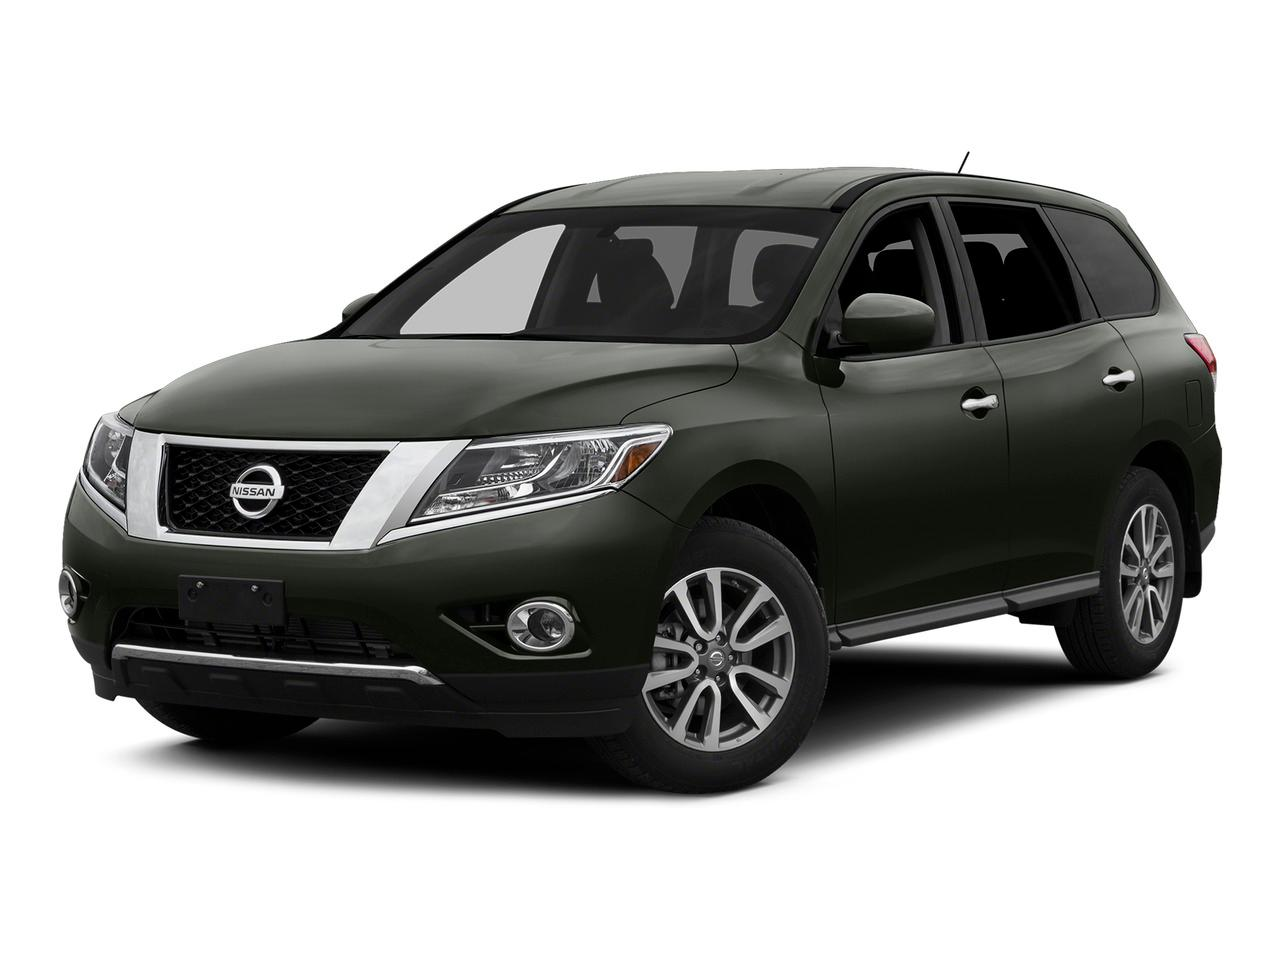 2015 Nissan Pathfinder Vehicle Photo in Spokane, WA 99207